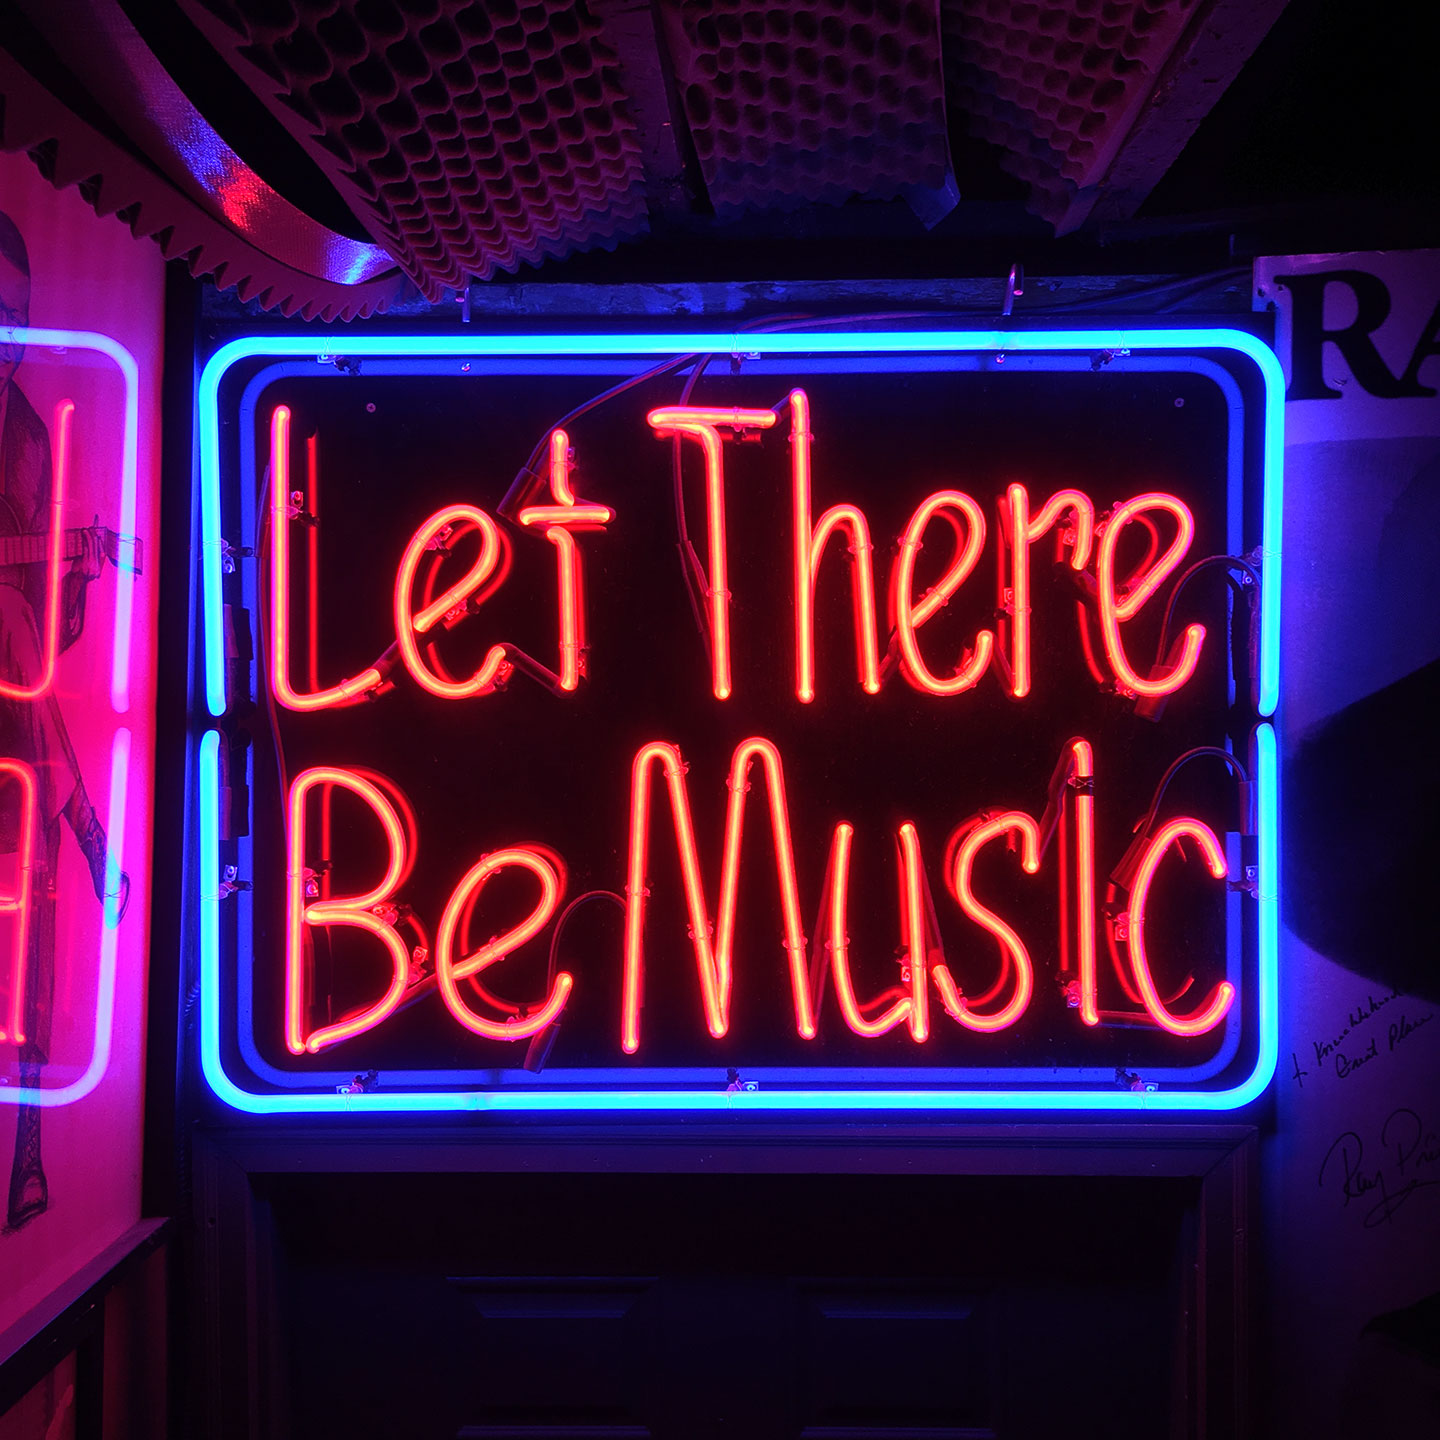 Let_There_Be_Music